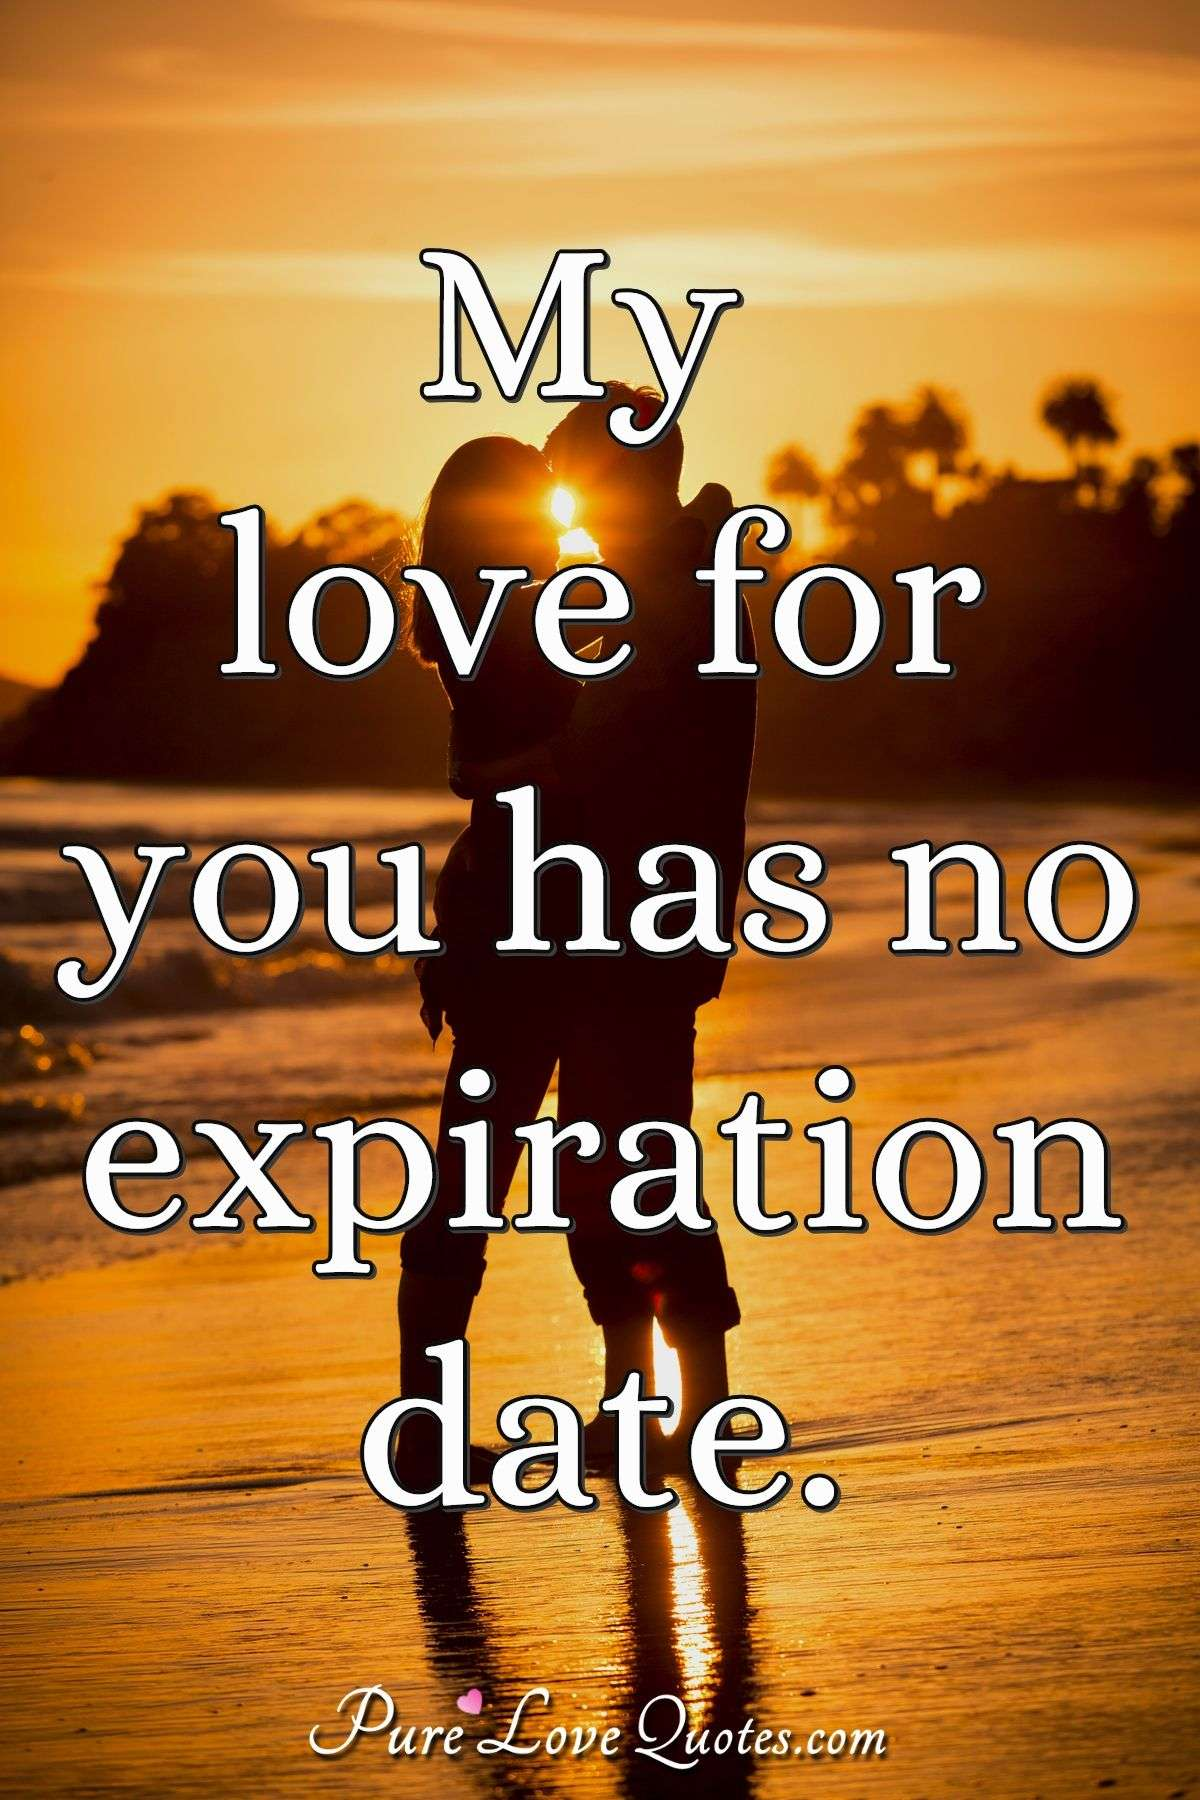 My love for you has no expiration date. - Anonymous